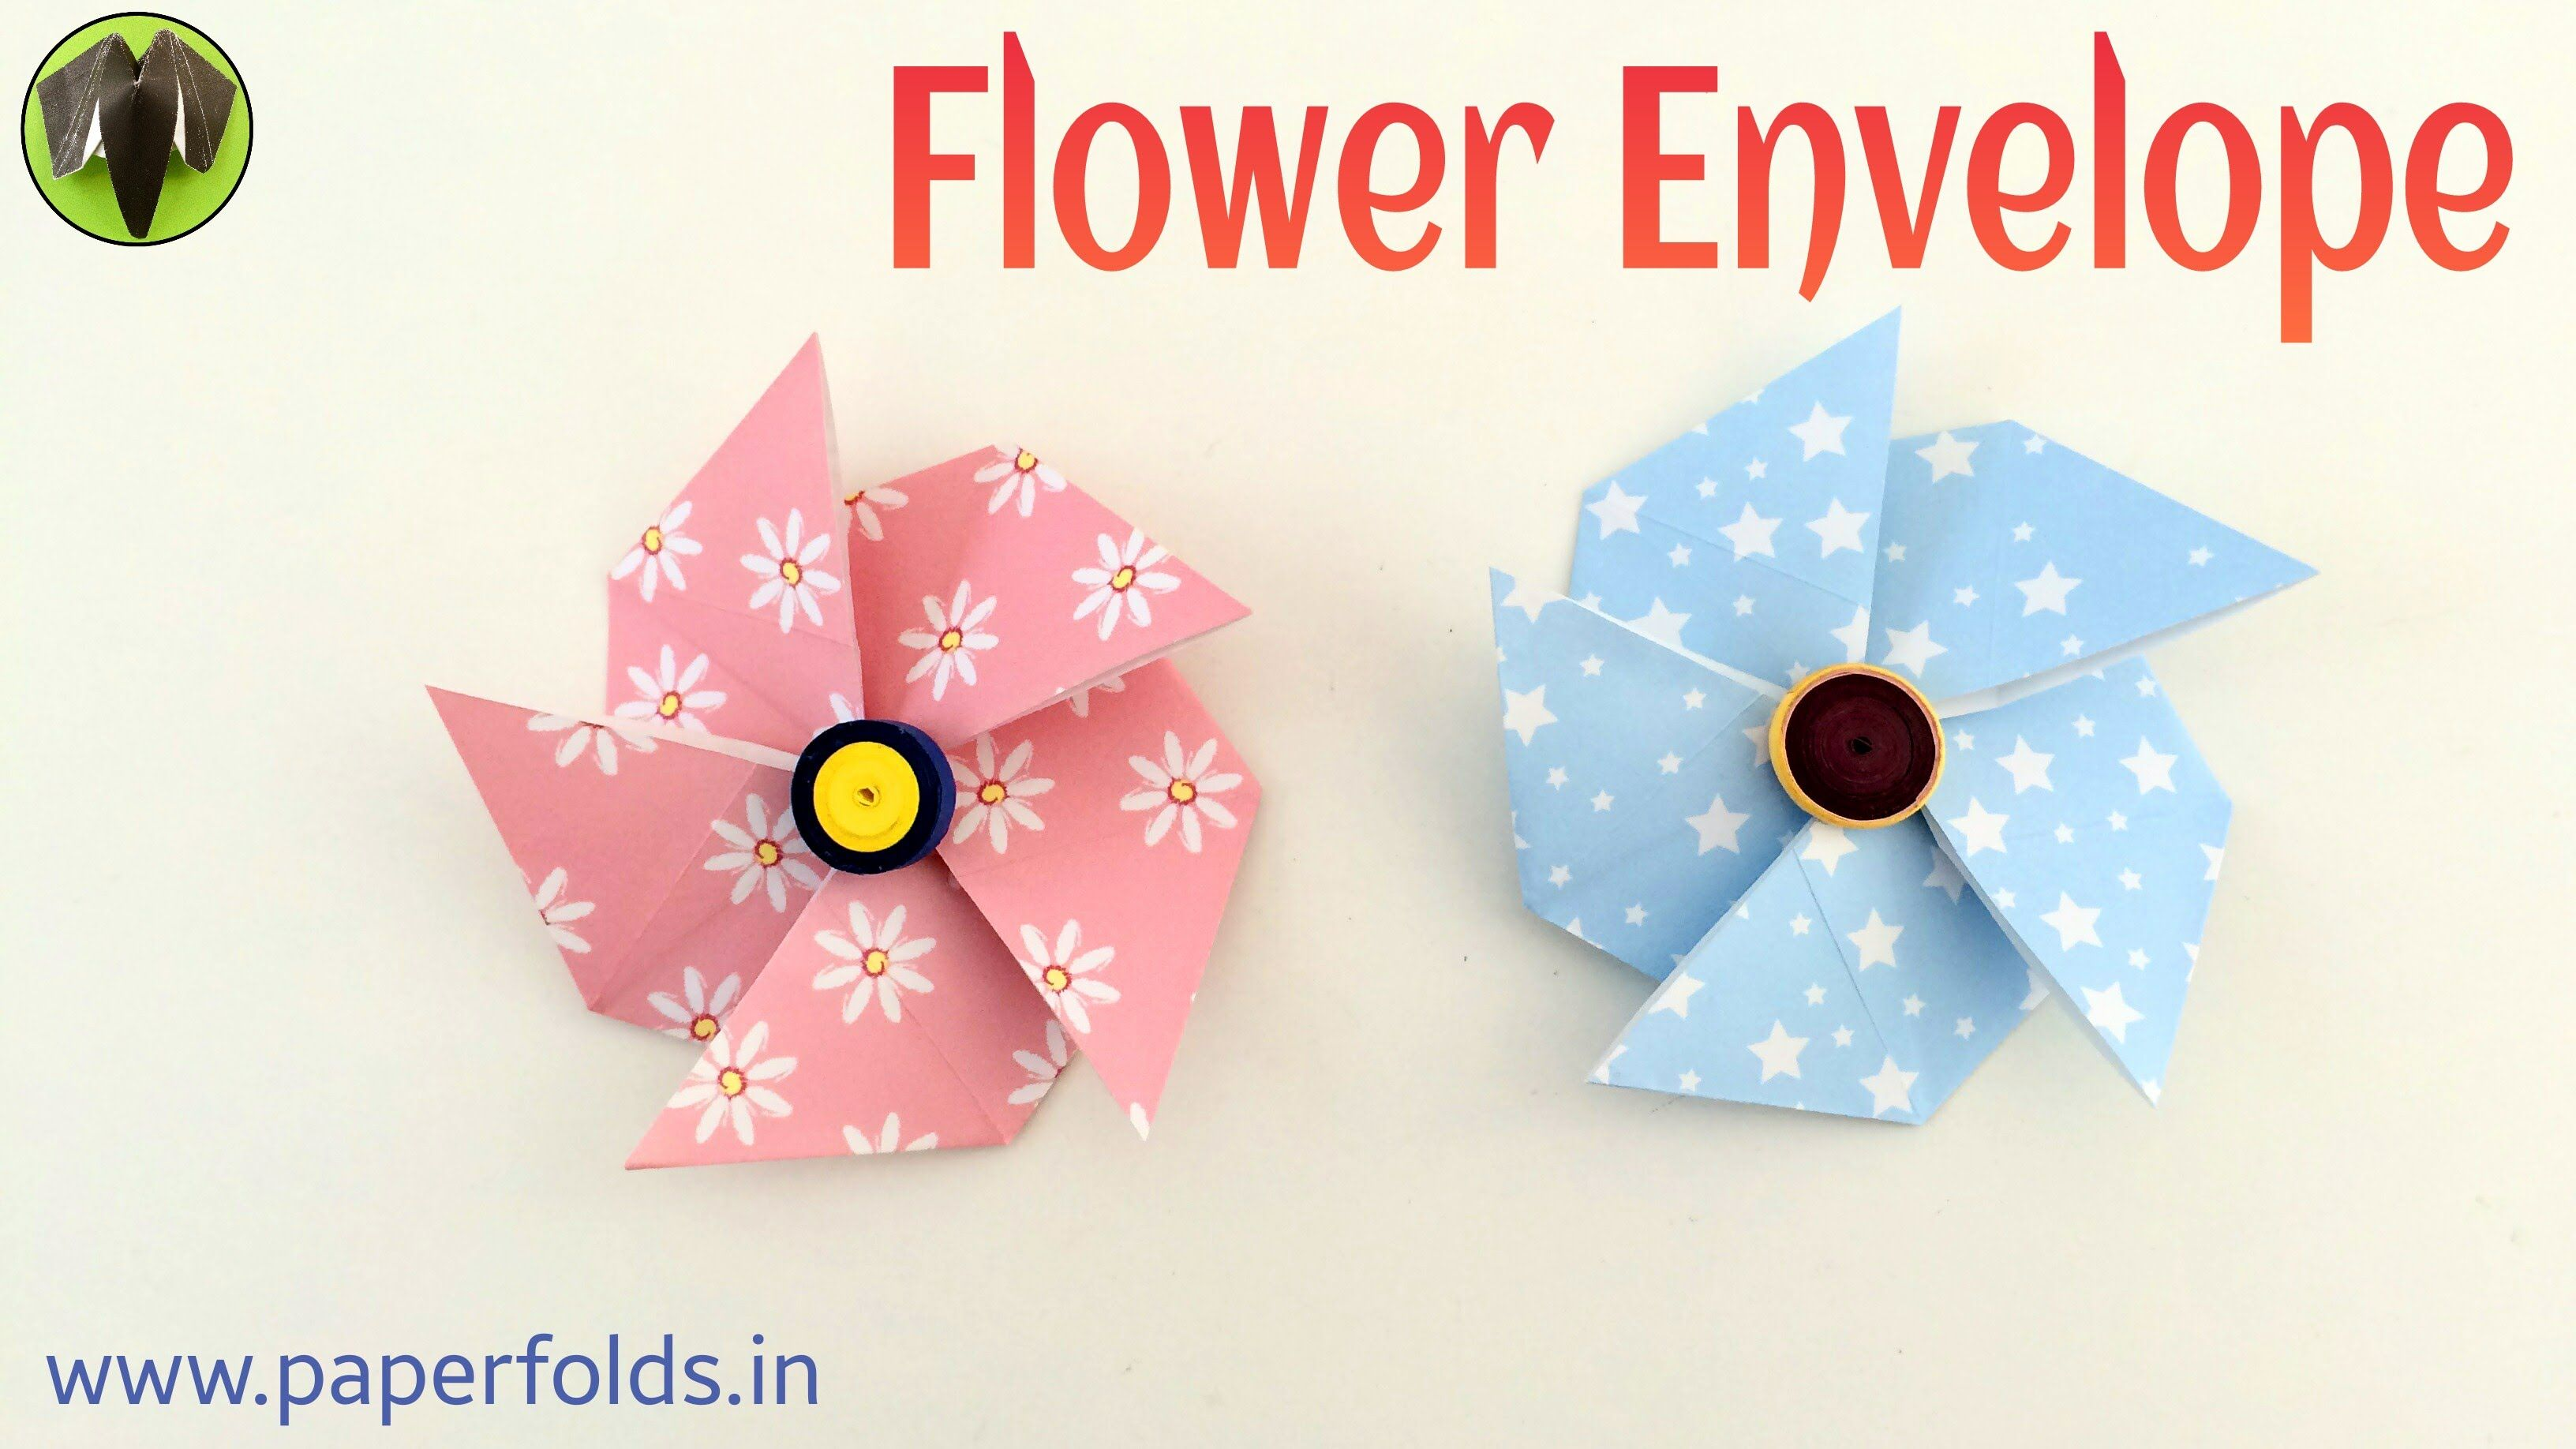 Flower Envelope Diy Origami Tutorial By Paper Folds 680